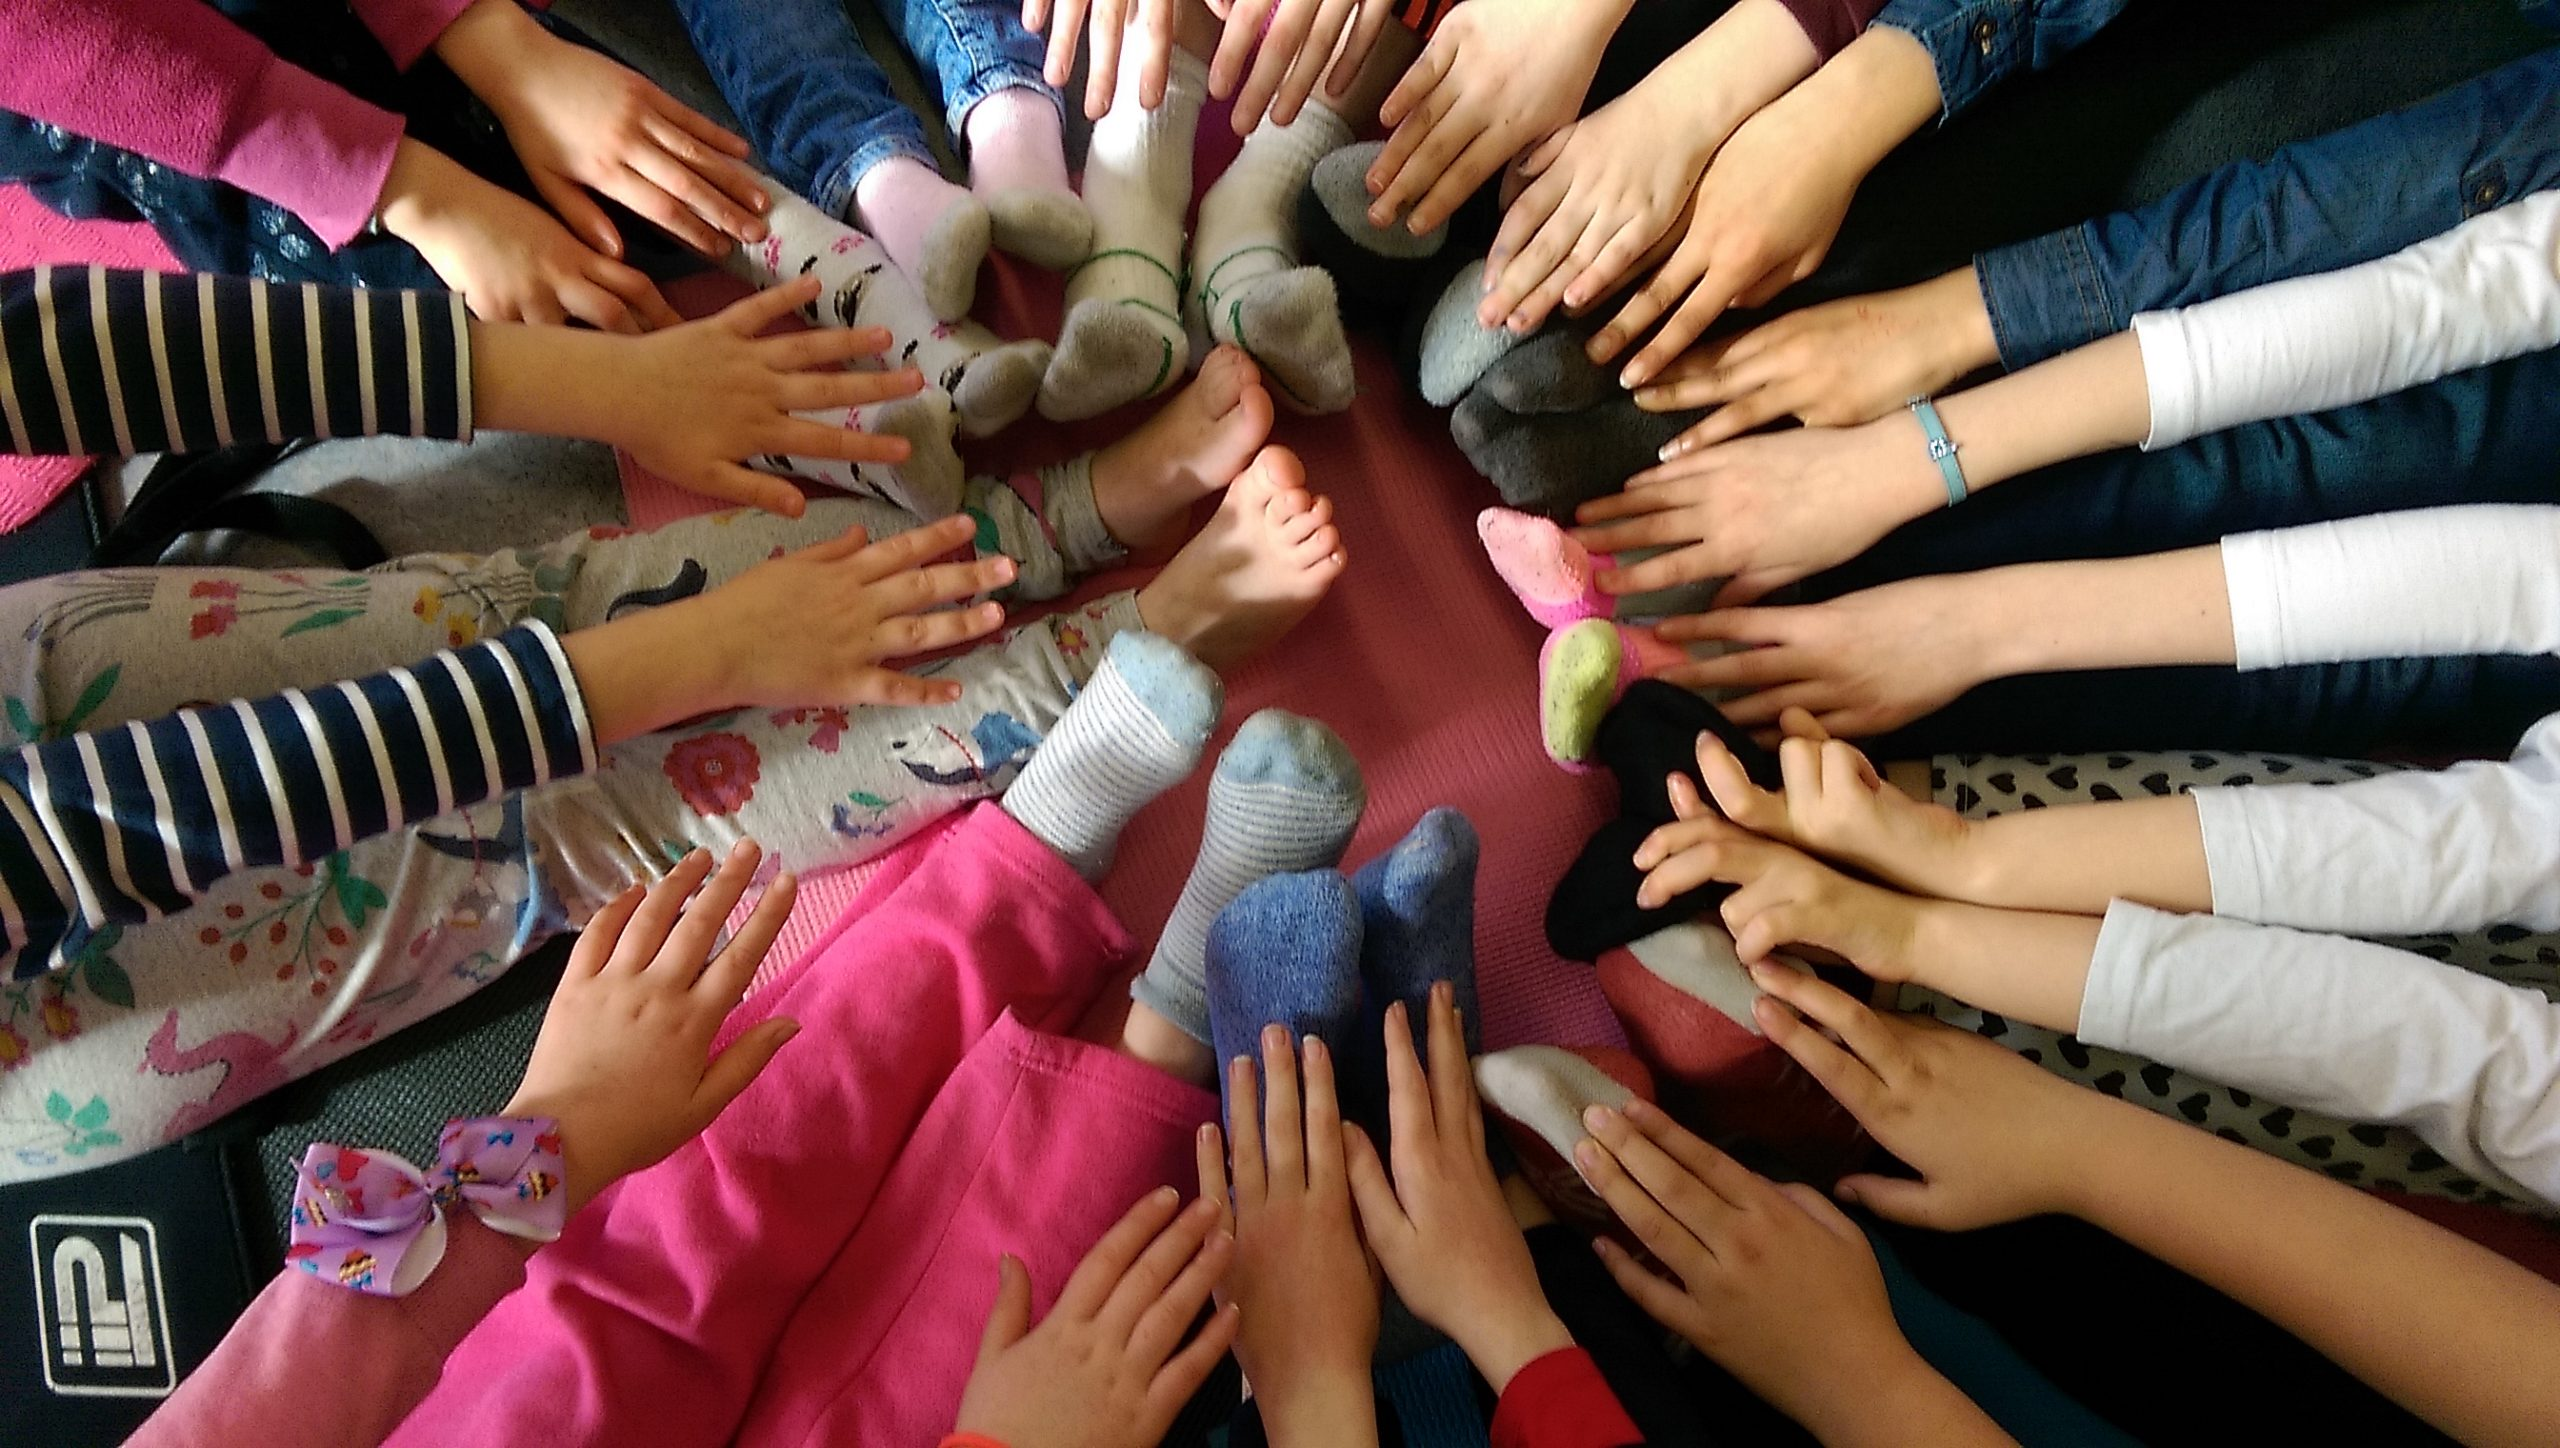 Creative Wellbeing Teacher Training supports the physical, mental & emotional health of children through yoga, creative movement & self-care- www.healingyoga.ie